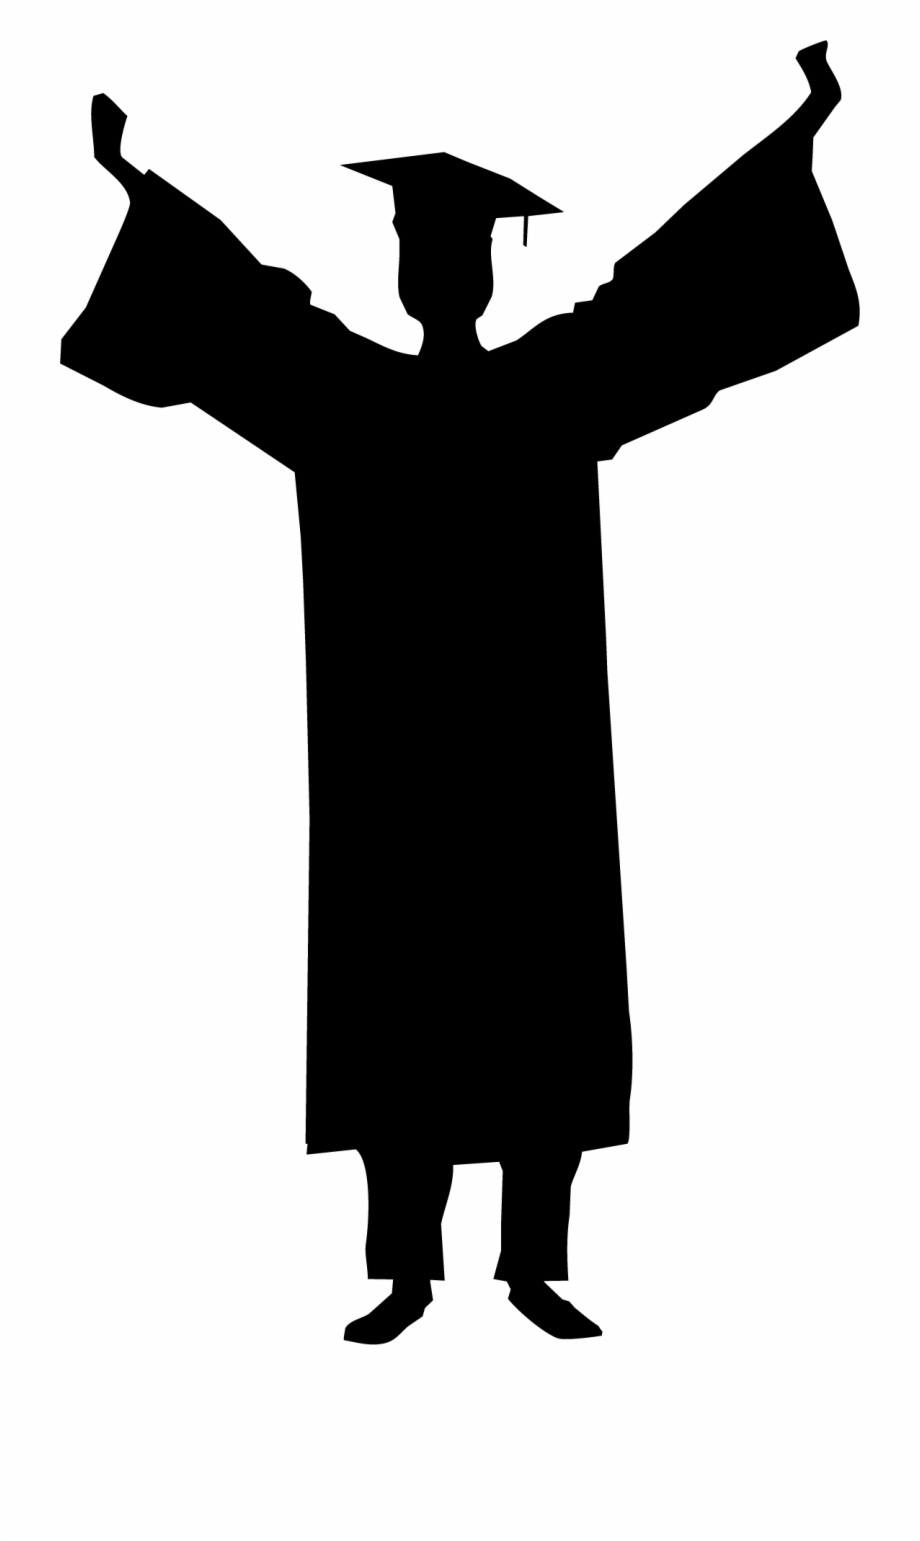 Graduate student clipart picture black and white download Graduation Ceremony Silhouette Student Clip Art - Silhouette ... picture black and white download